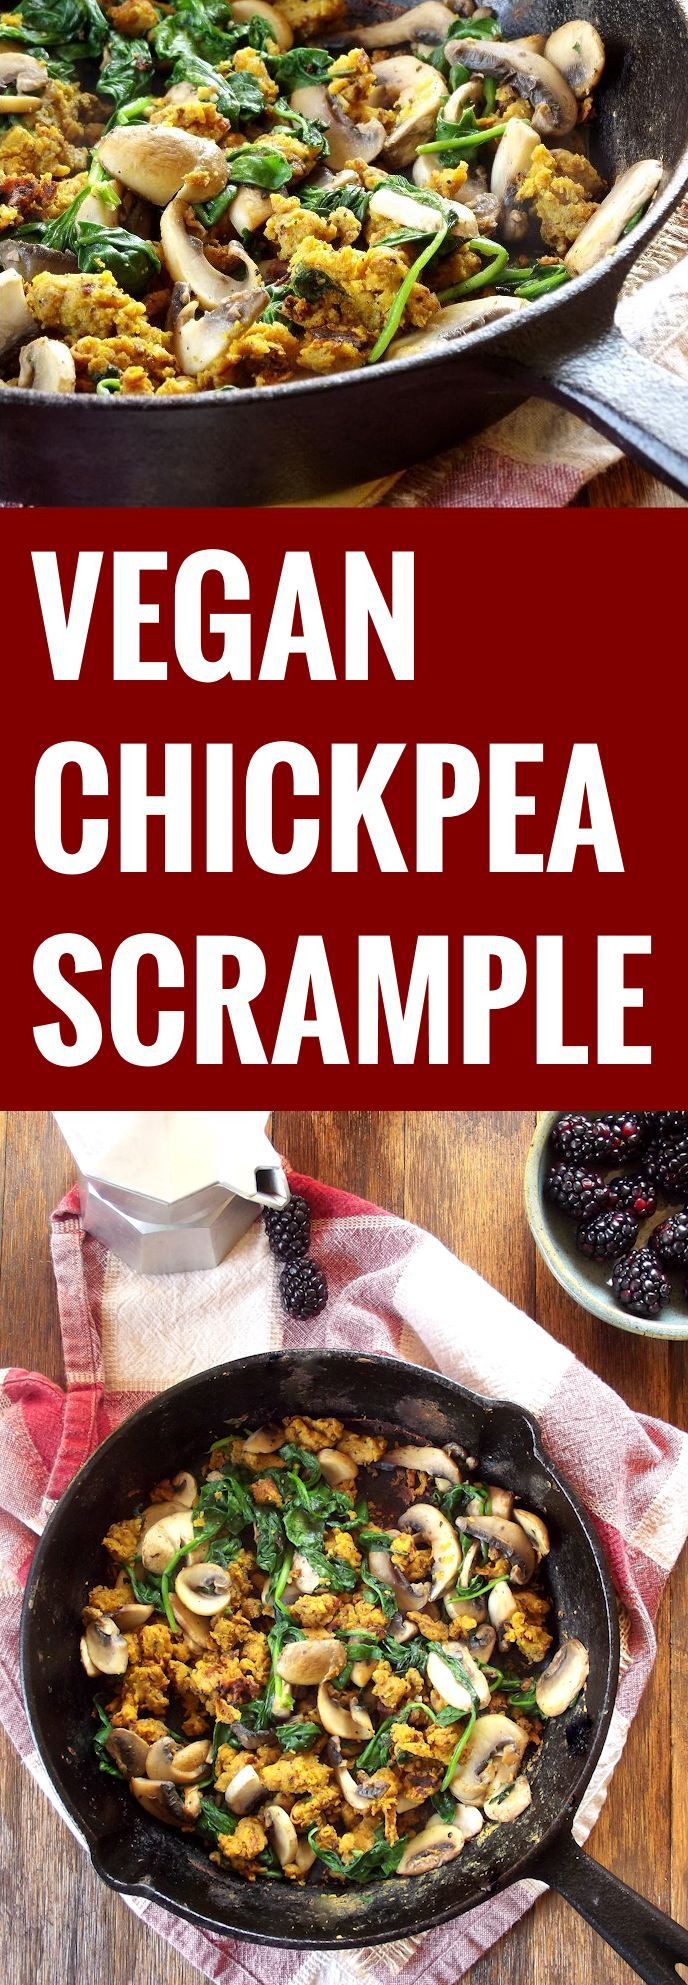 This savory vegan chickpea scramble is made from a chickpea flour batter, scrambled up with garlicky sauteed spinach and mushrooms.